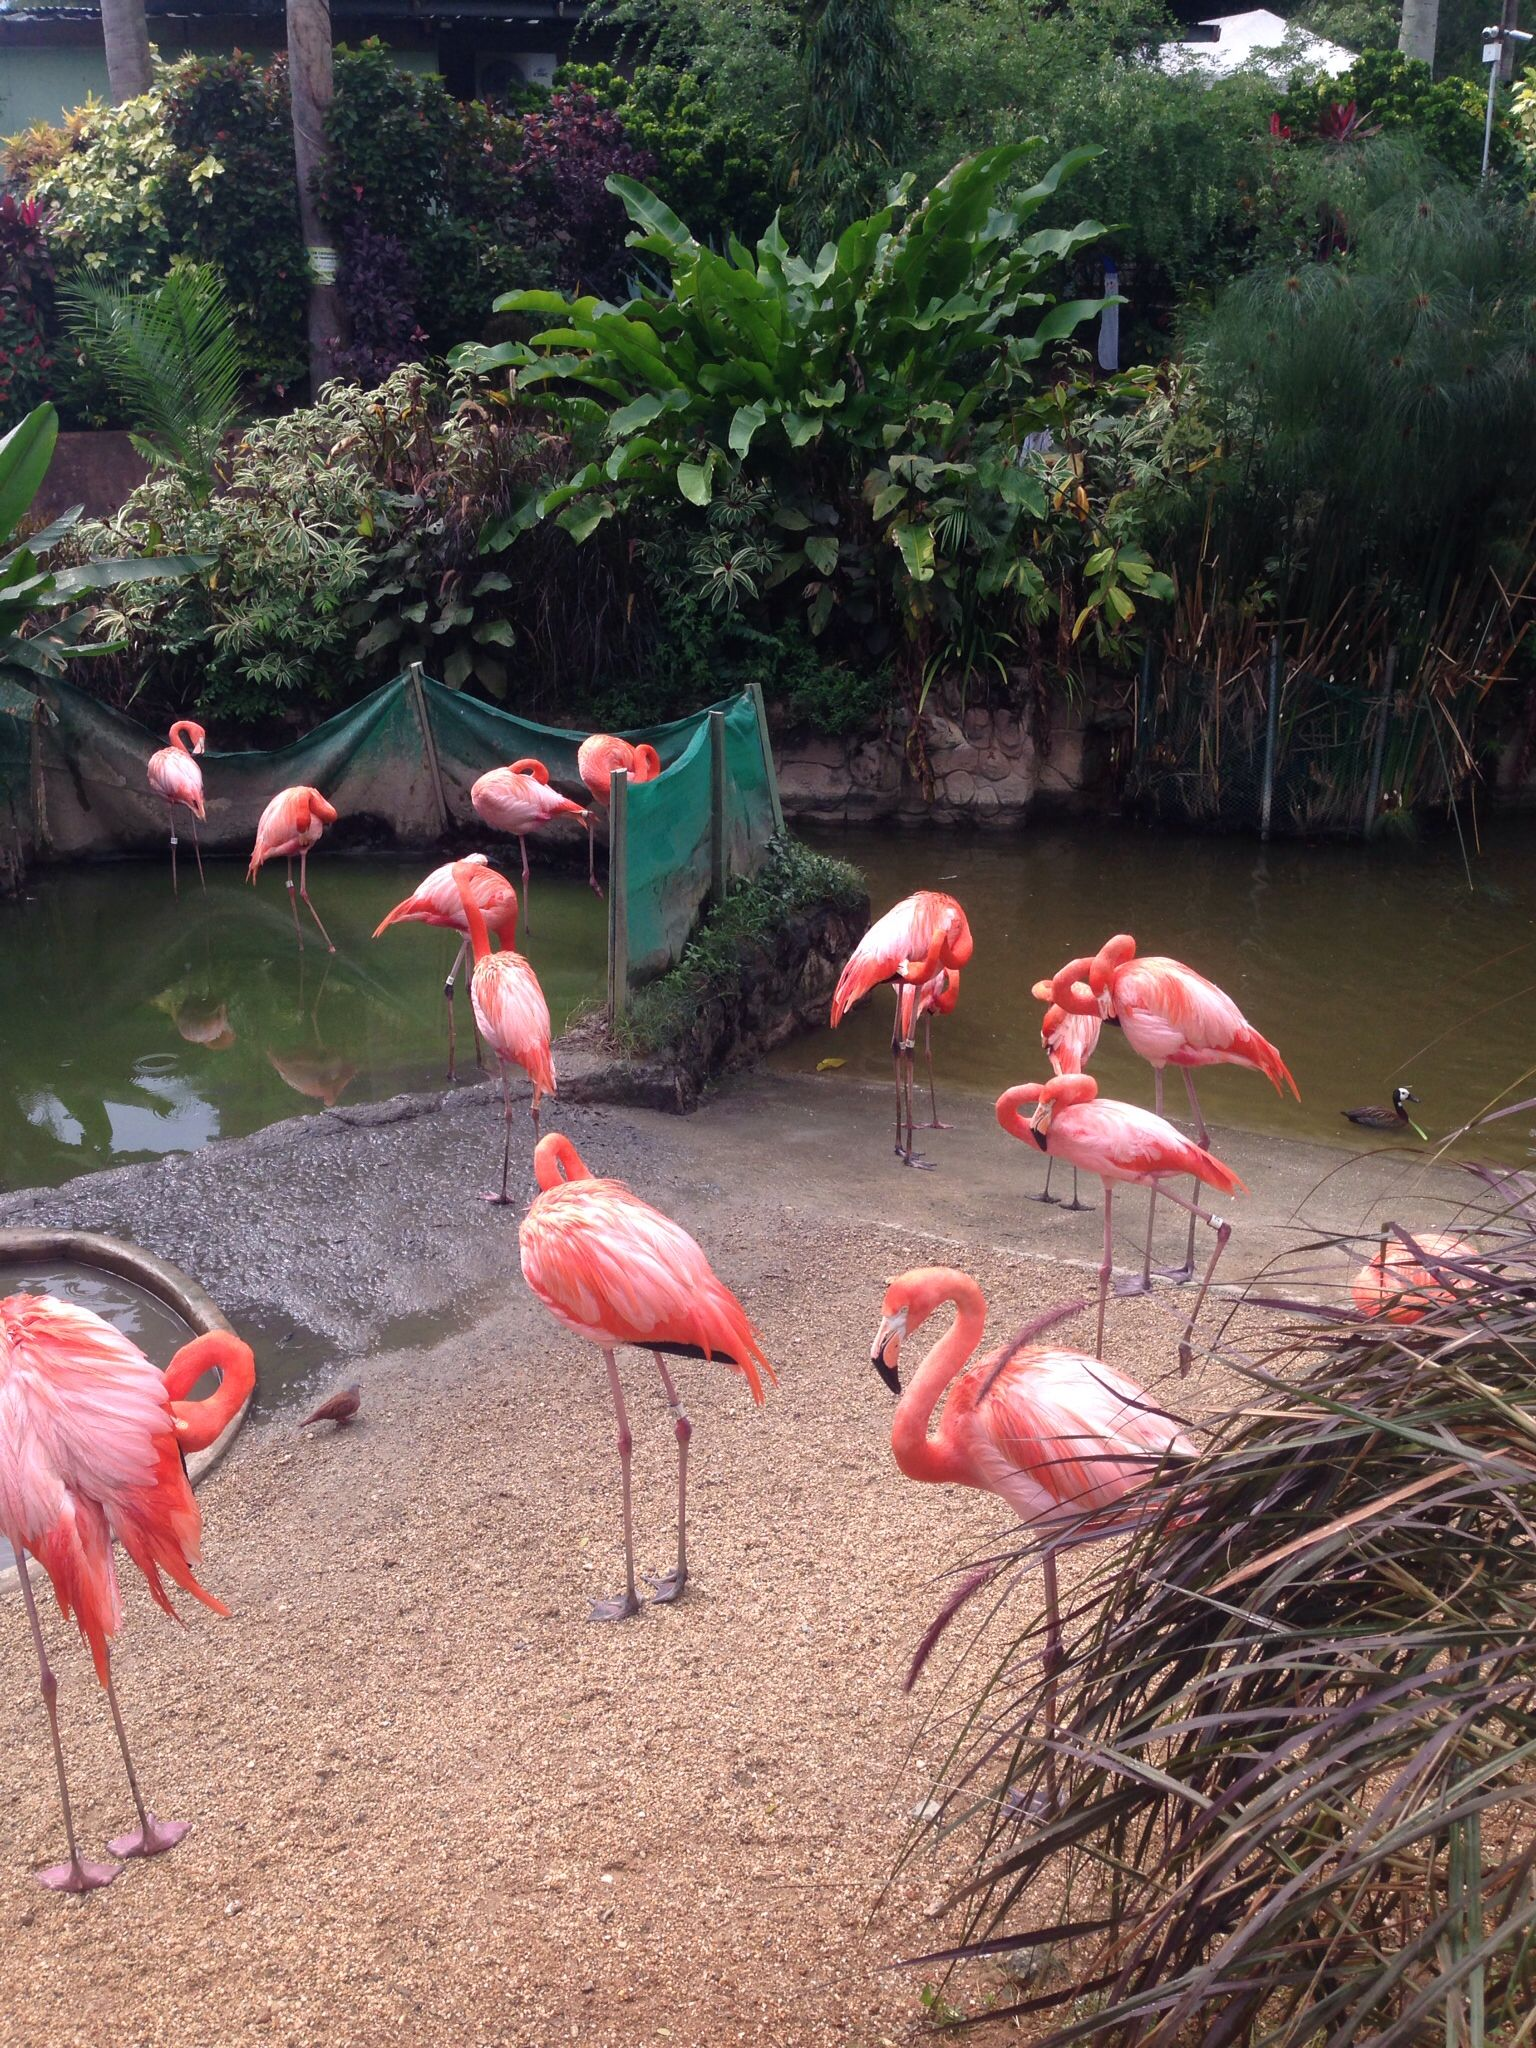 Flamingos at Trinidad and Tobago Emperor Valley Zoo in